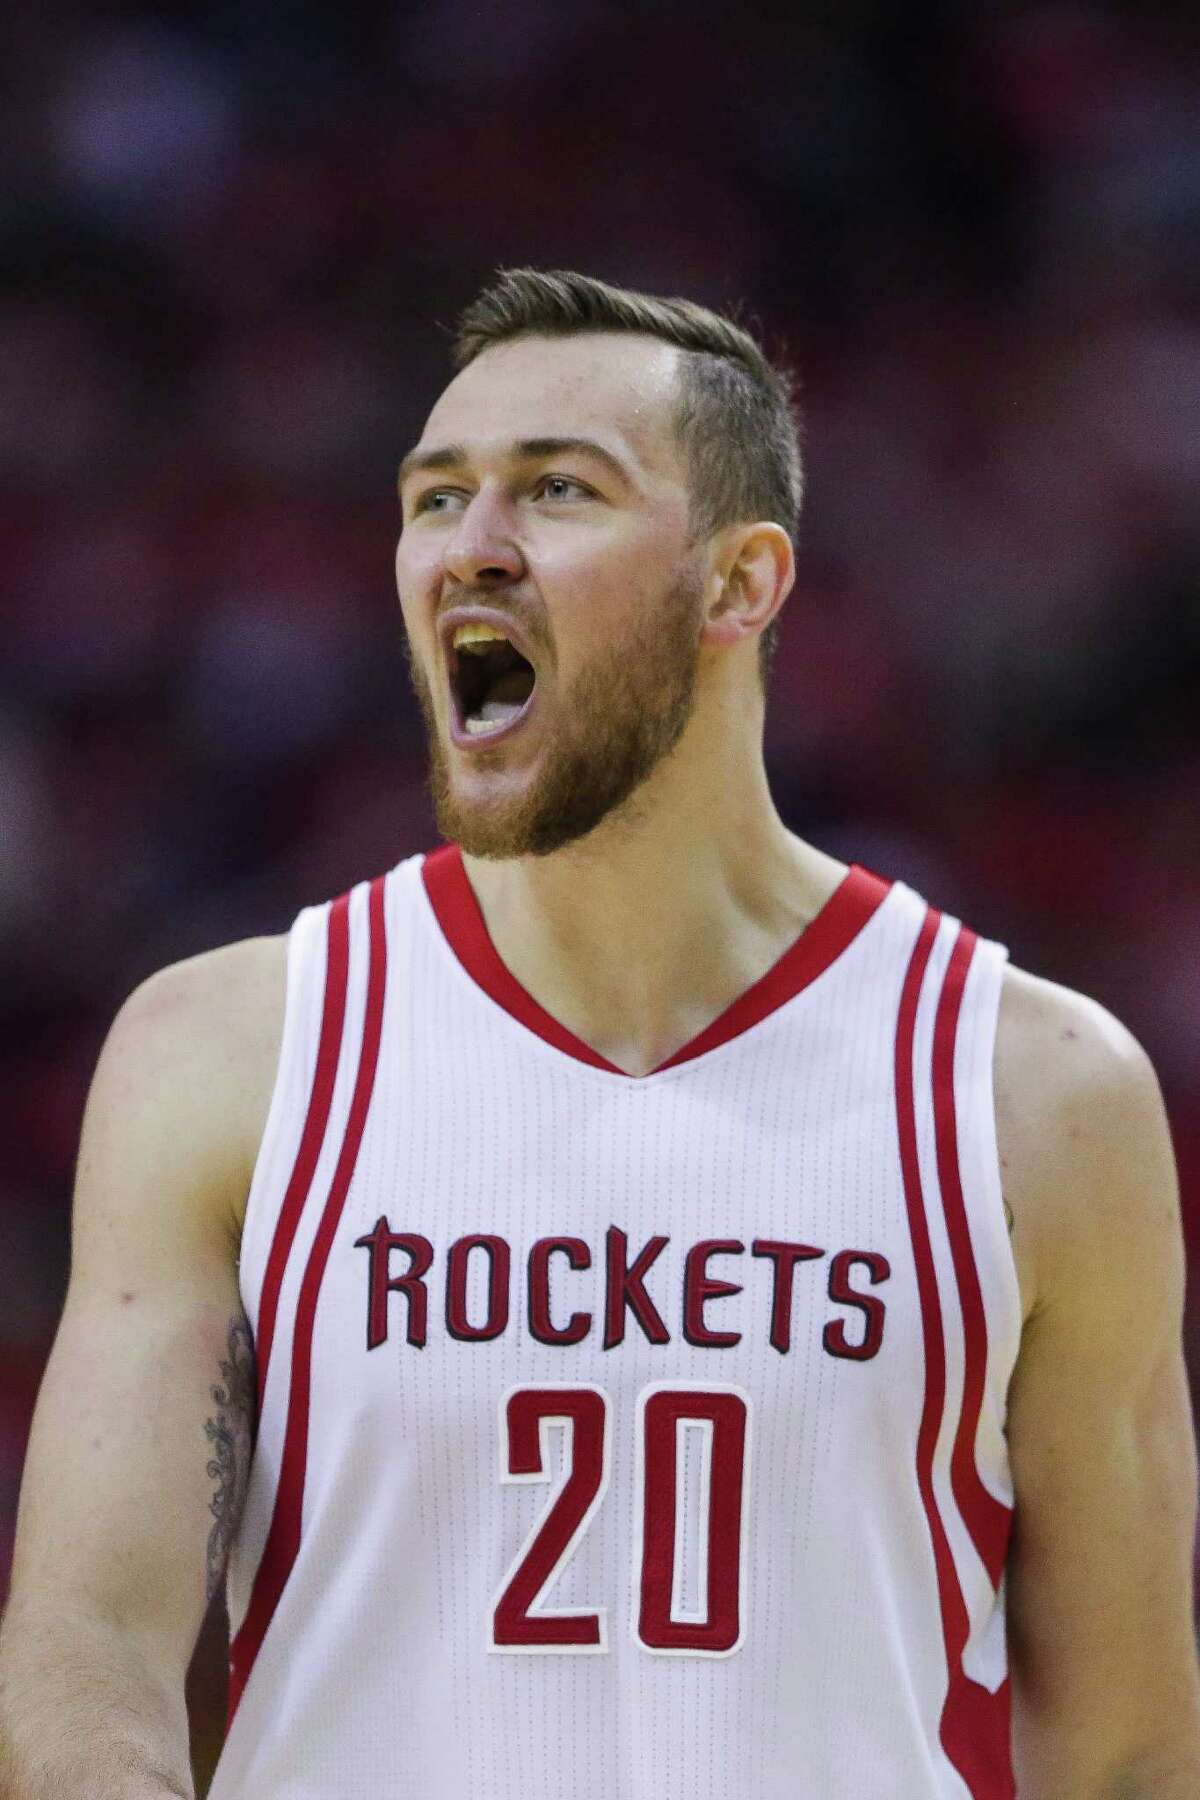 Houston Rockets forward Donatas Motiejunas (20) reacts after getting fouled during the second half in game four of a first-round NBA Playoffs series at Toyota Center Sunday, April 24, 2016 in Houston.